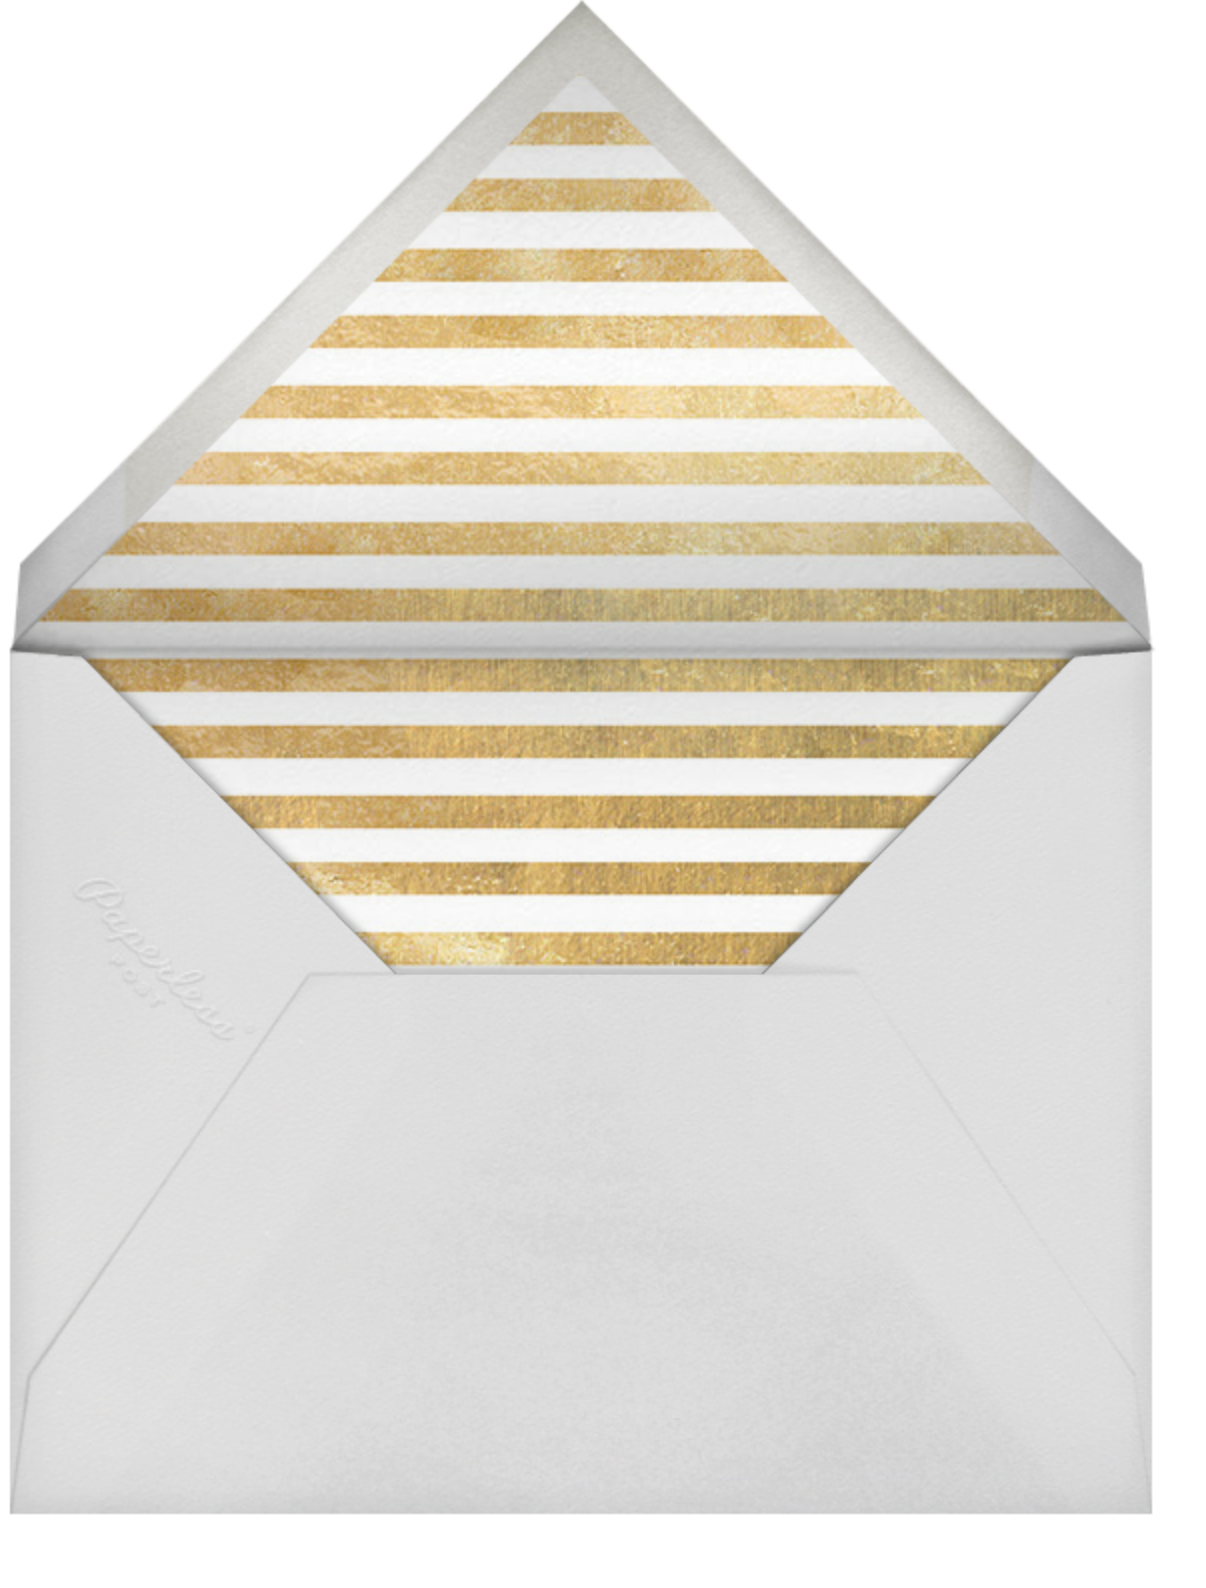 Confetti - White/Rose Gold - kate spade new york - Cocktail party - envelope back